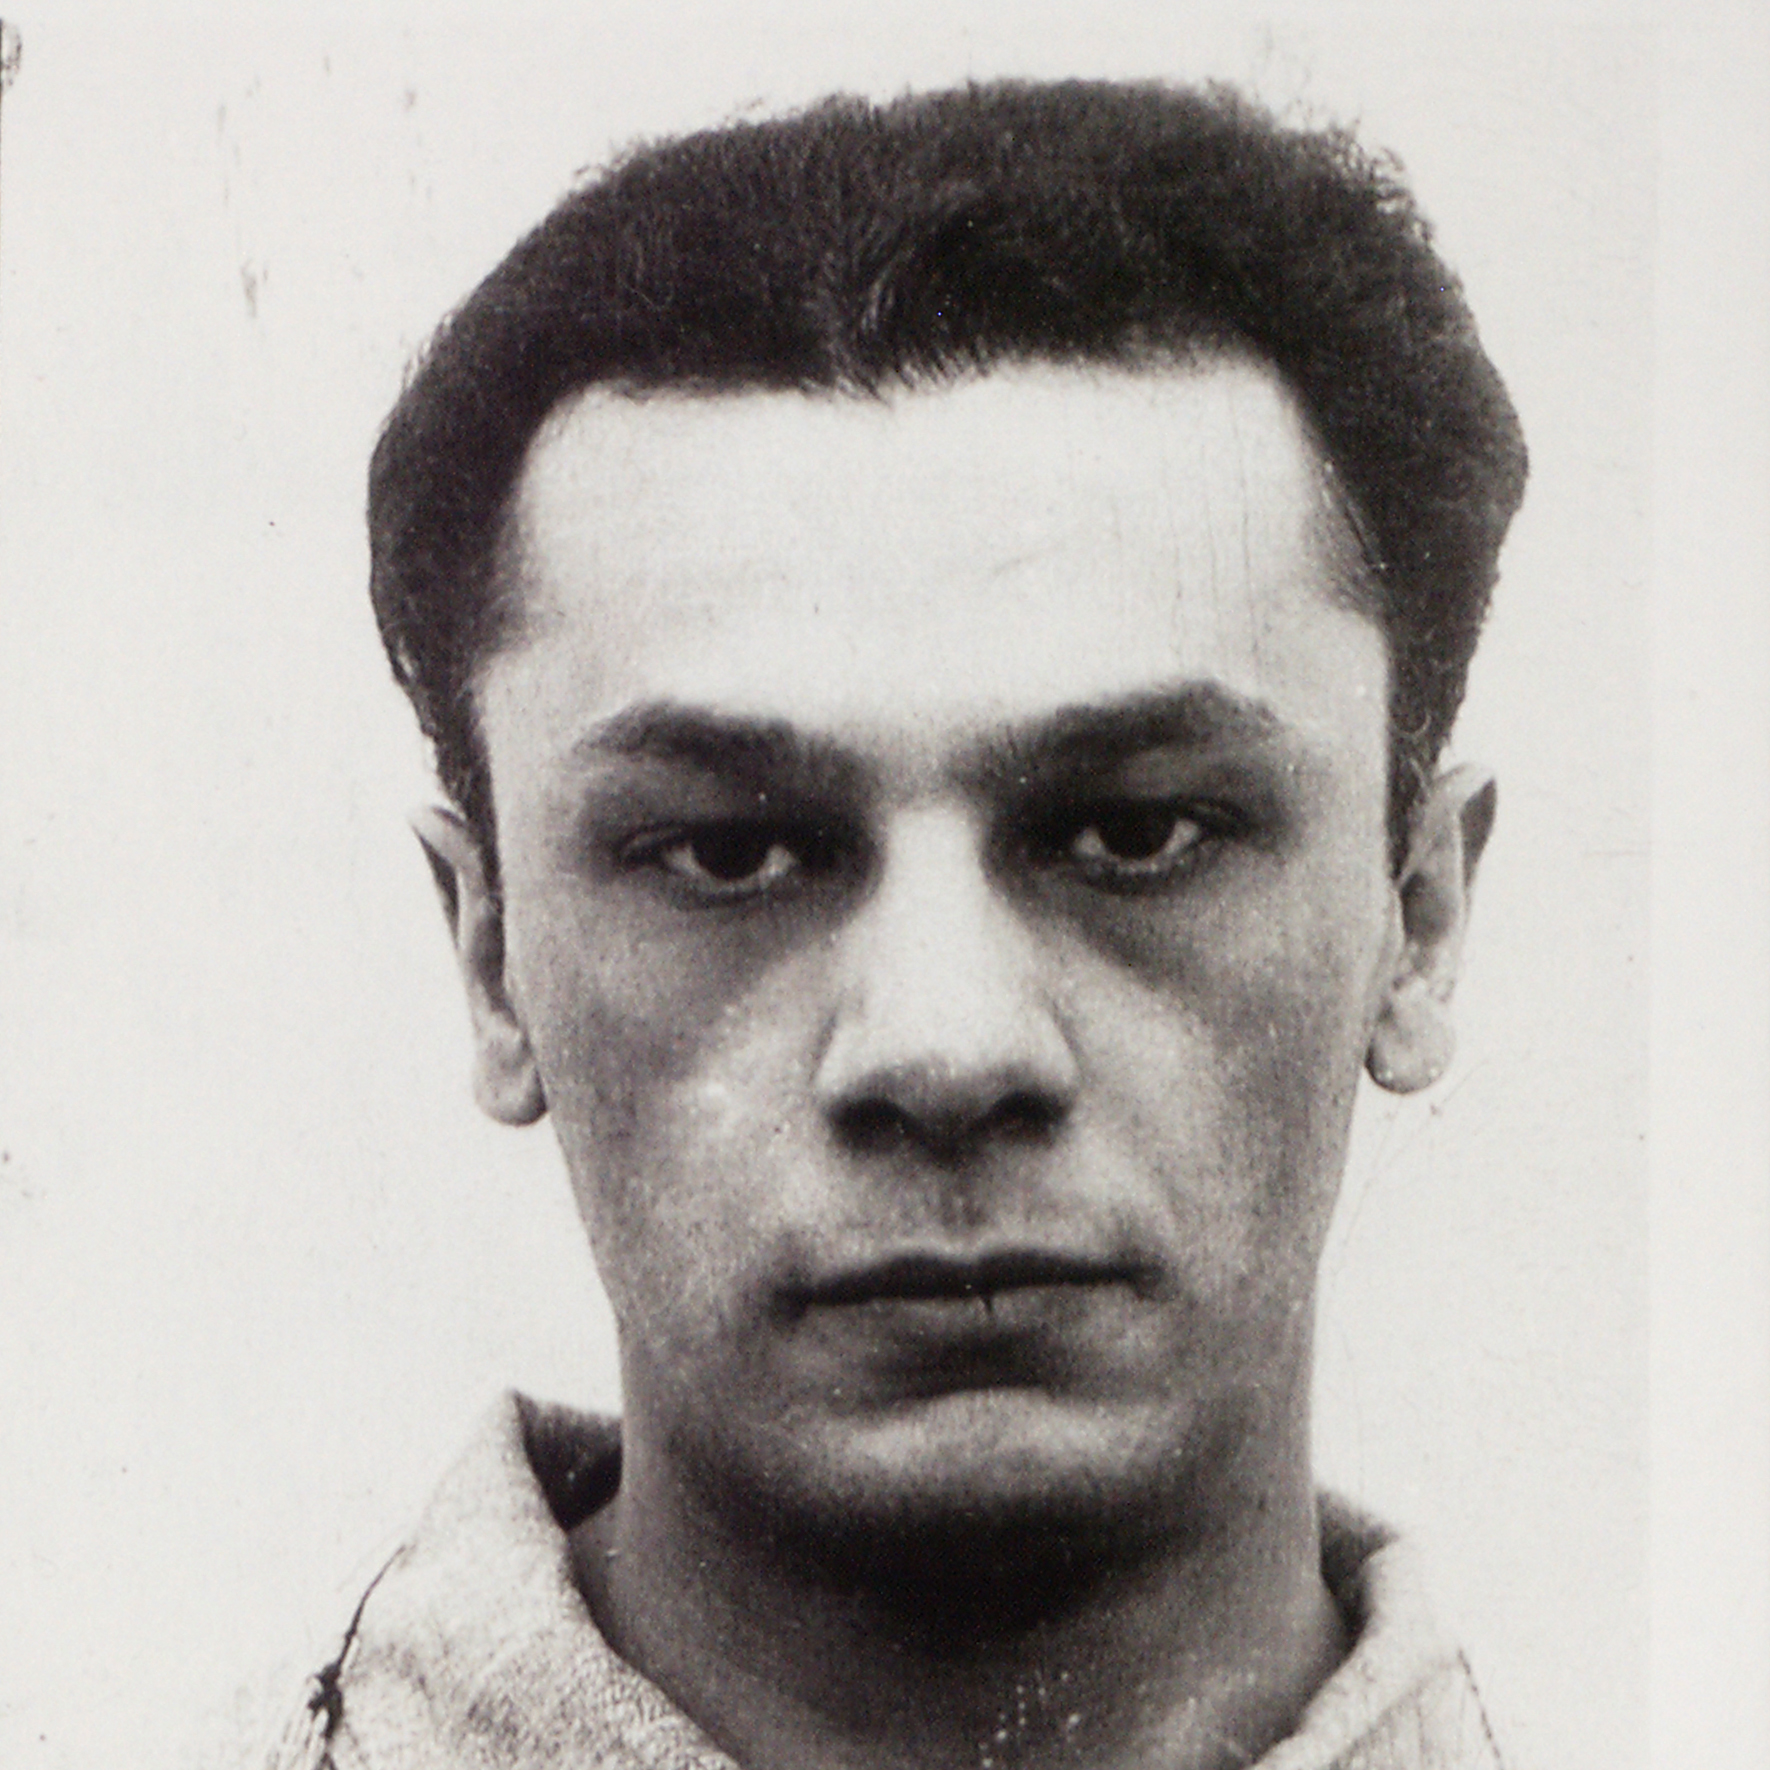 Suspect Charles Monazym's mug shot in Buffalo, New York, May 7, 1942.  He was arrested with Thomas Viola.